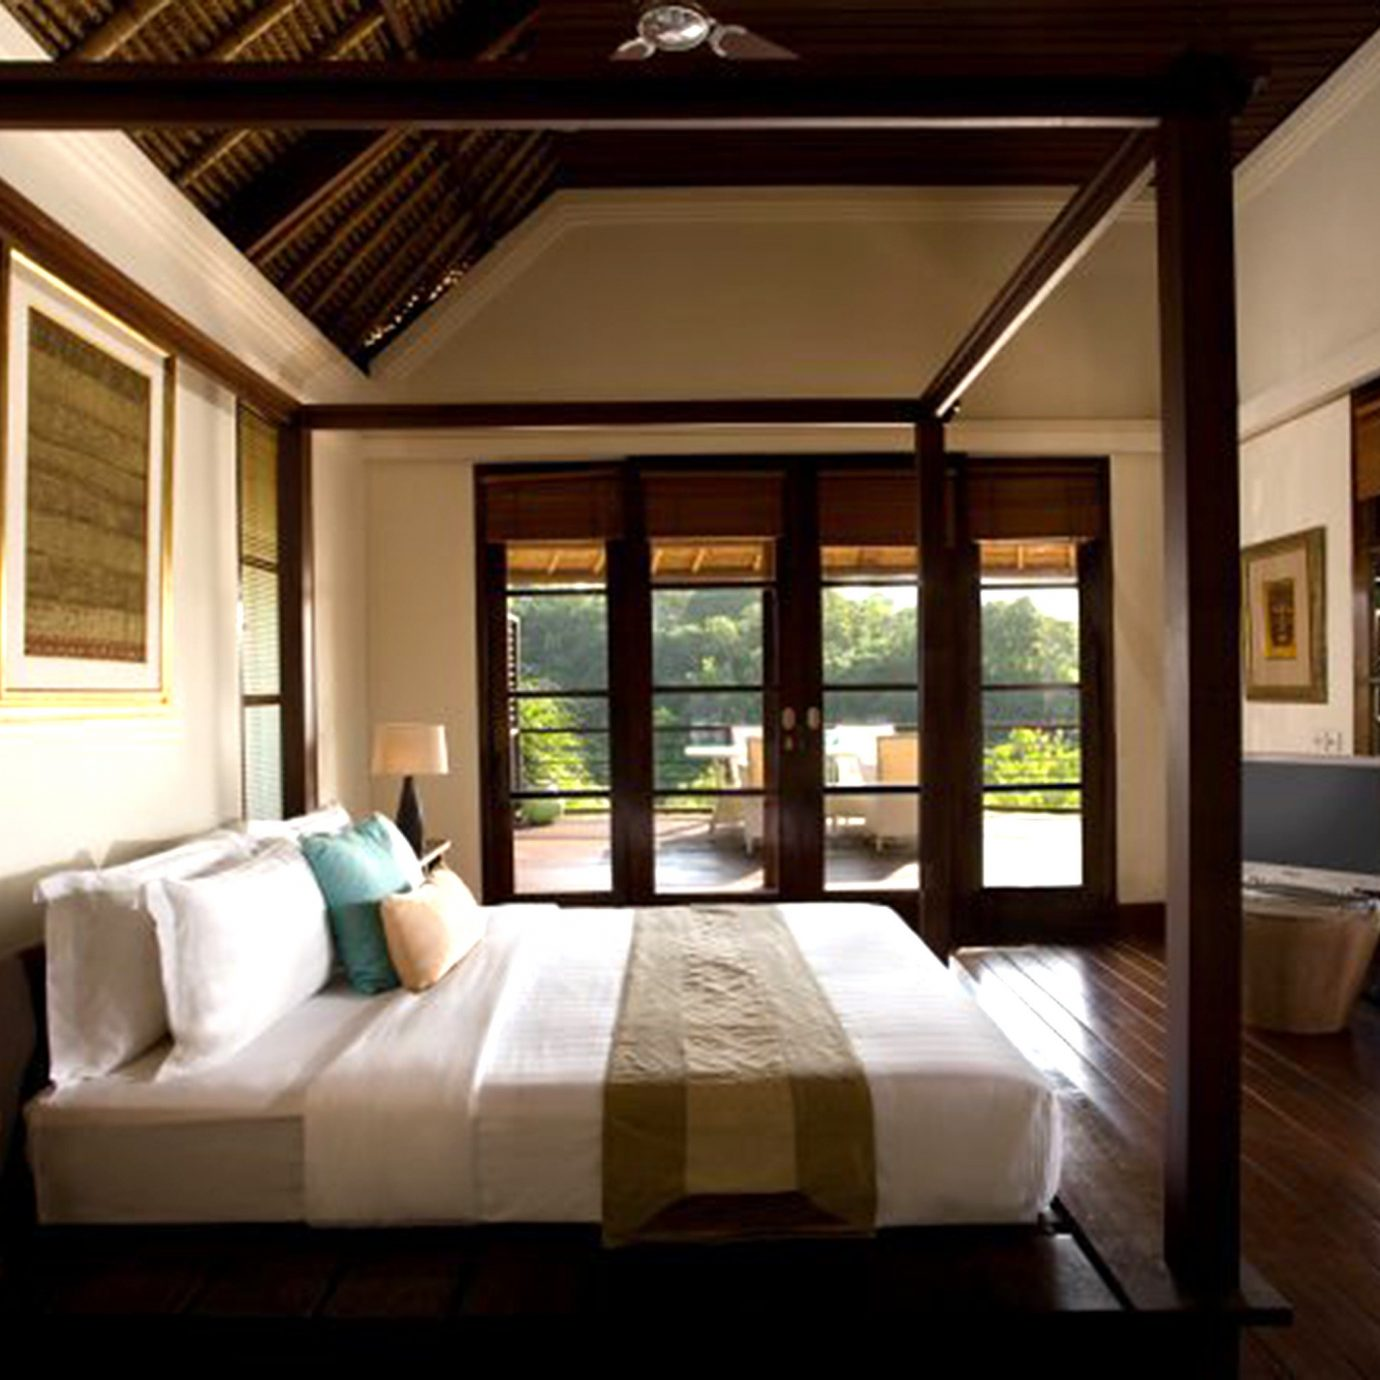 Bedroom Elegant Hip Luxury Modern Suite property condominium living room Resort home mansion Villa